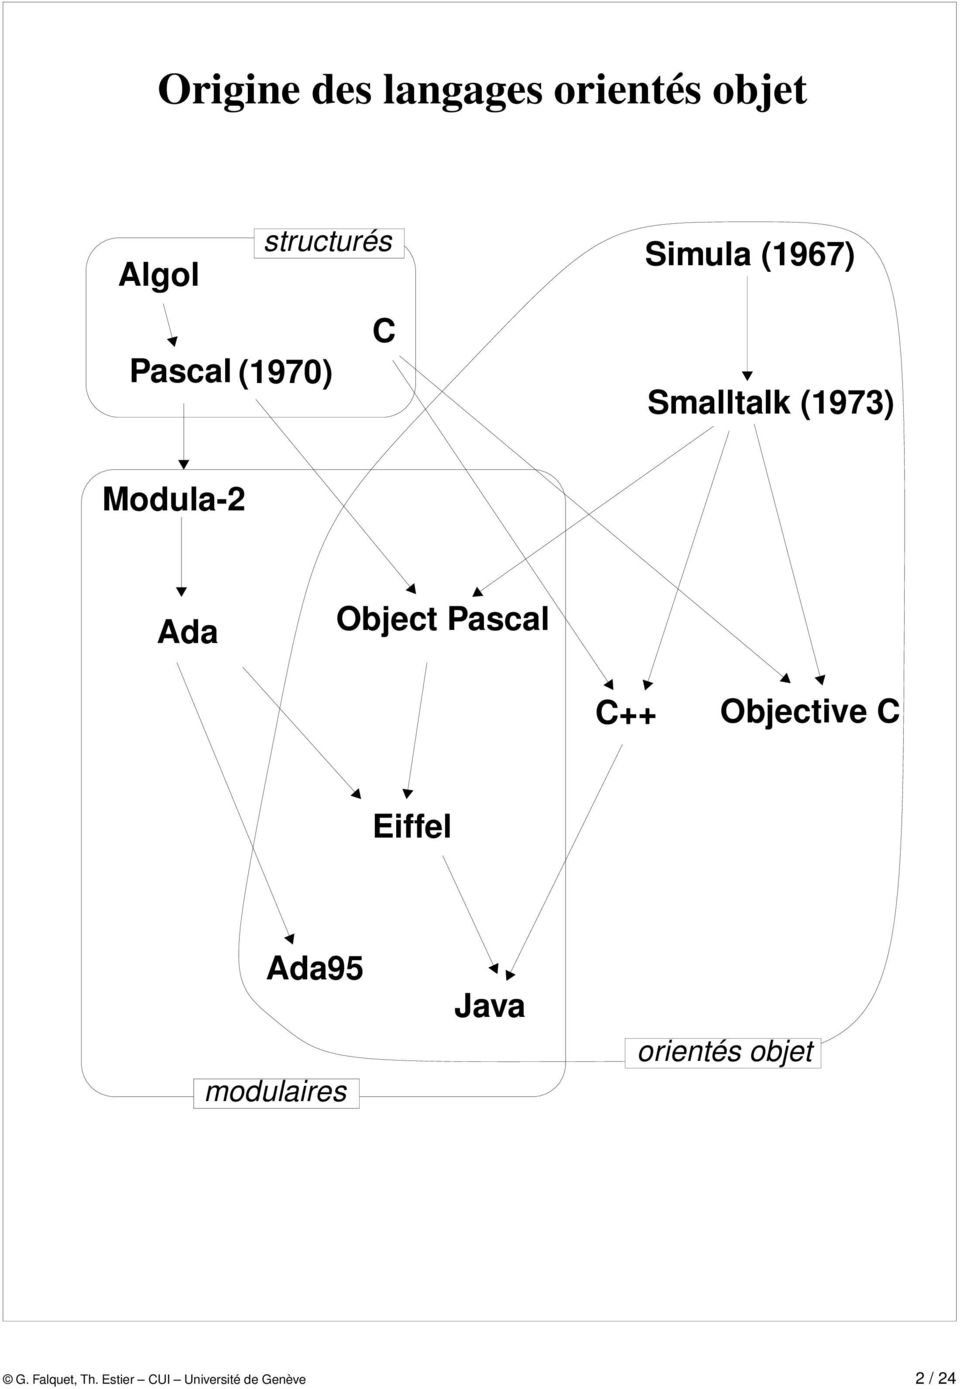 Object Pascal C++ Objective C Eiffel Ada95 modulaires Java